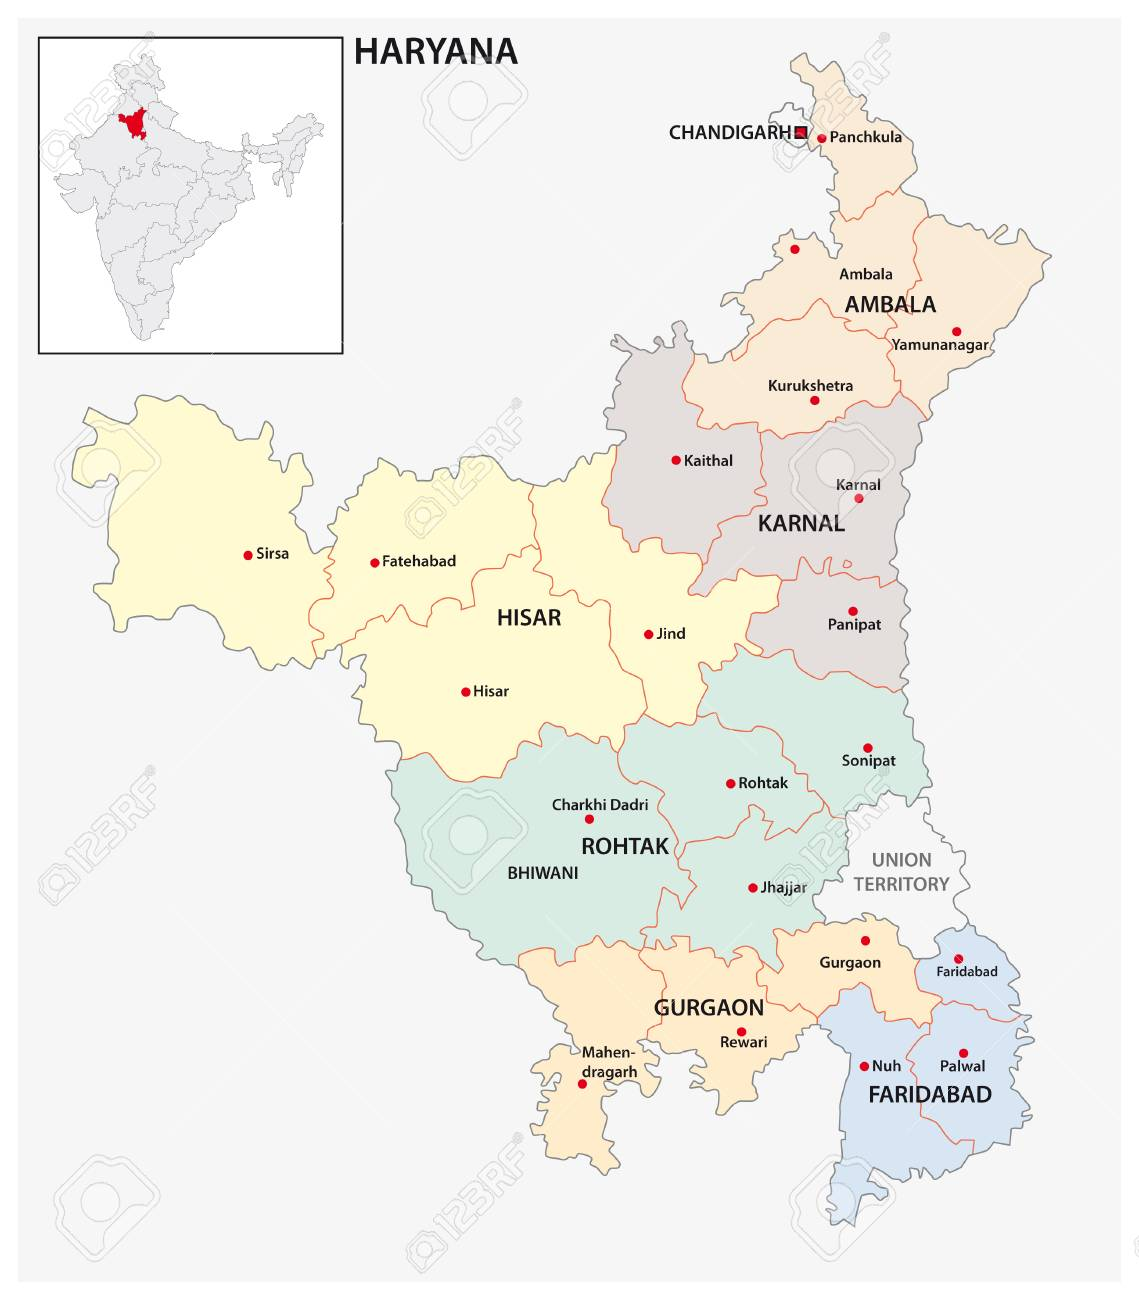 administrative and political map of indian state of Haryana,.. on great britain map, u.s. regions map, arunachal pradesh, french regions map, tamil nadu map, state capitals map, tonga map, iran map, uttar pradesh, indian states and capitals, brazil map, european nations map, new delhi, tamil nadu, cyber world map, india map, indiana county map, jammu and kashmir, maharashtra map, himachal pradesh, bangladesh map, cape of good hope map, andhra pradesh map, indiana state map, andaman and nicobar islands, illinois-indiana map, saudi arabia map, andhra pradesh,